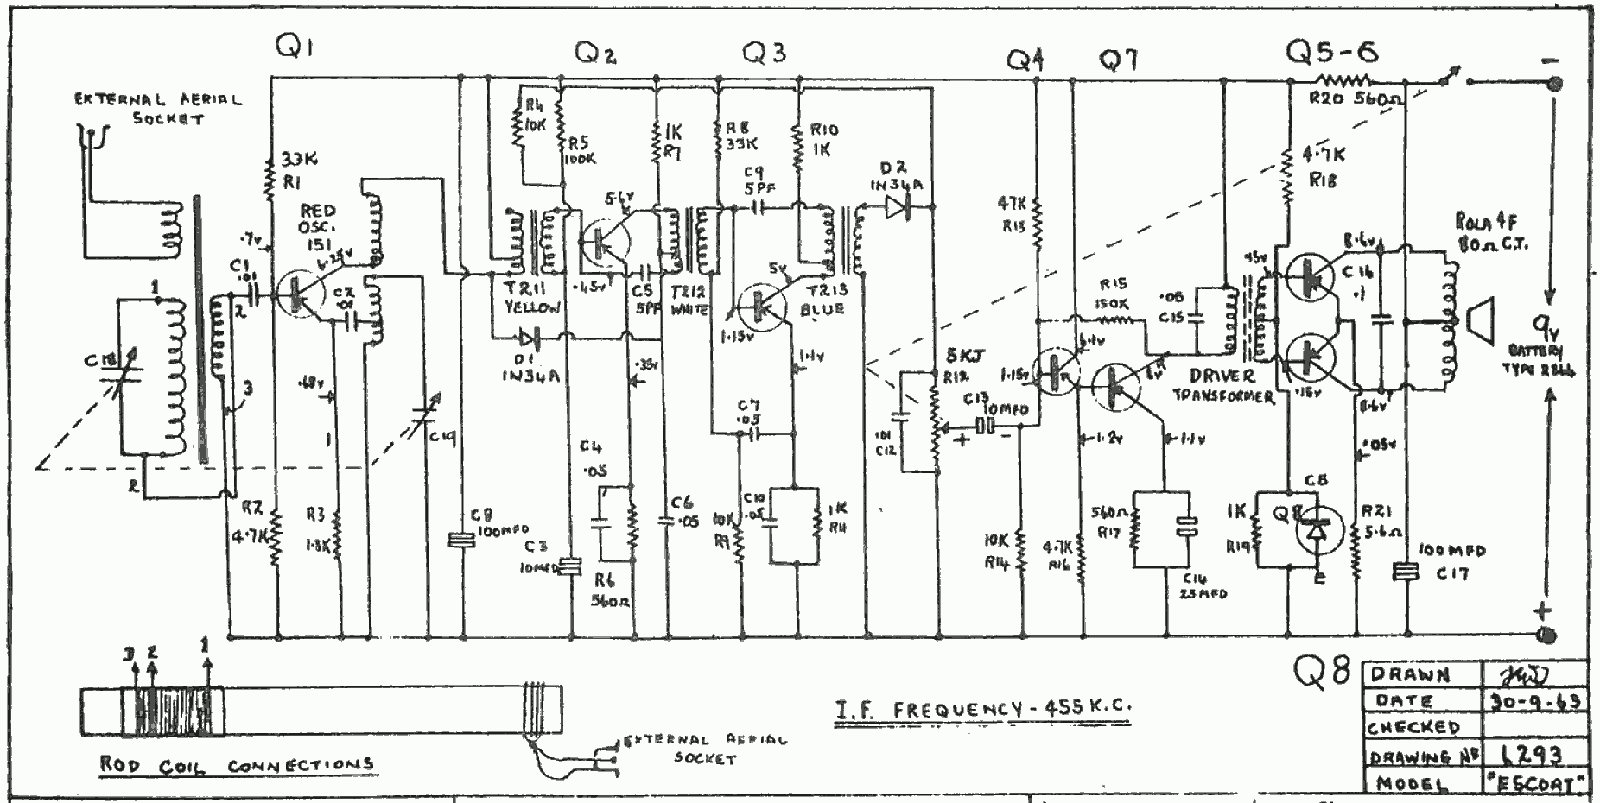 1963 Dreco Escort Schematic